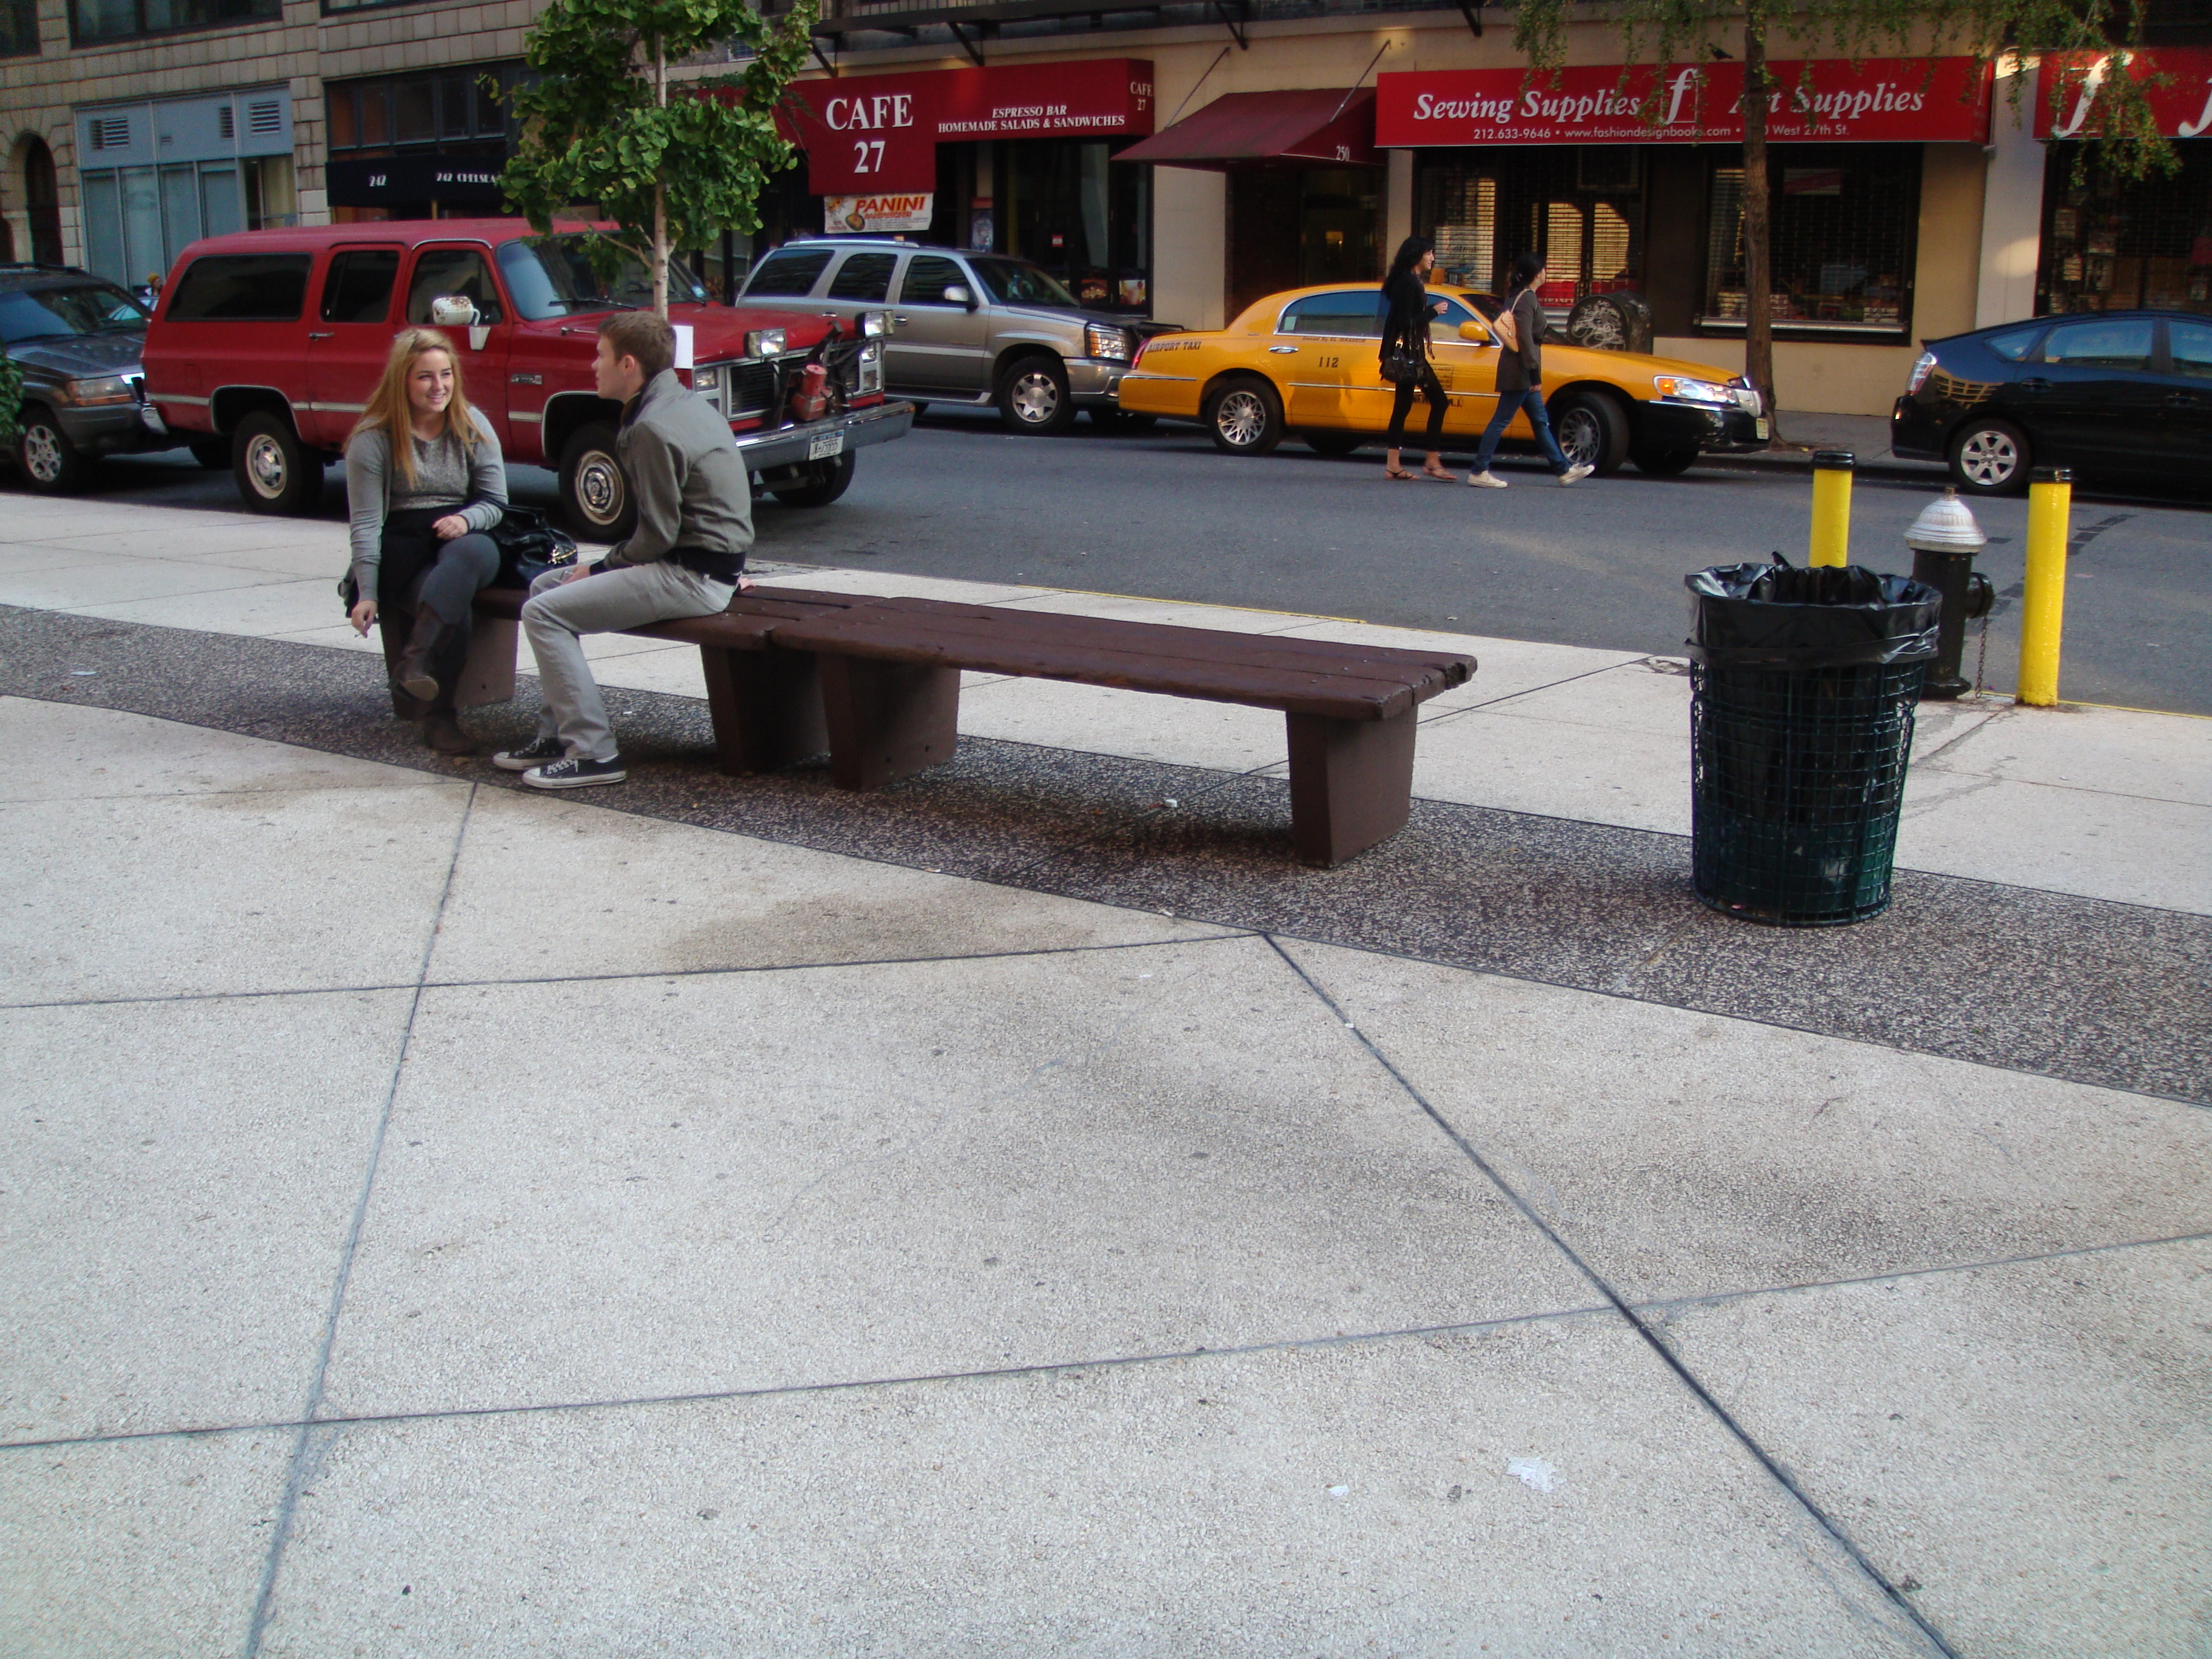 File:New York City bench and Cafe 27.jpg